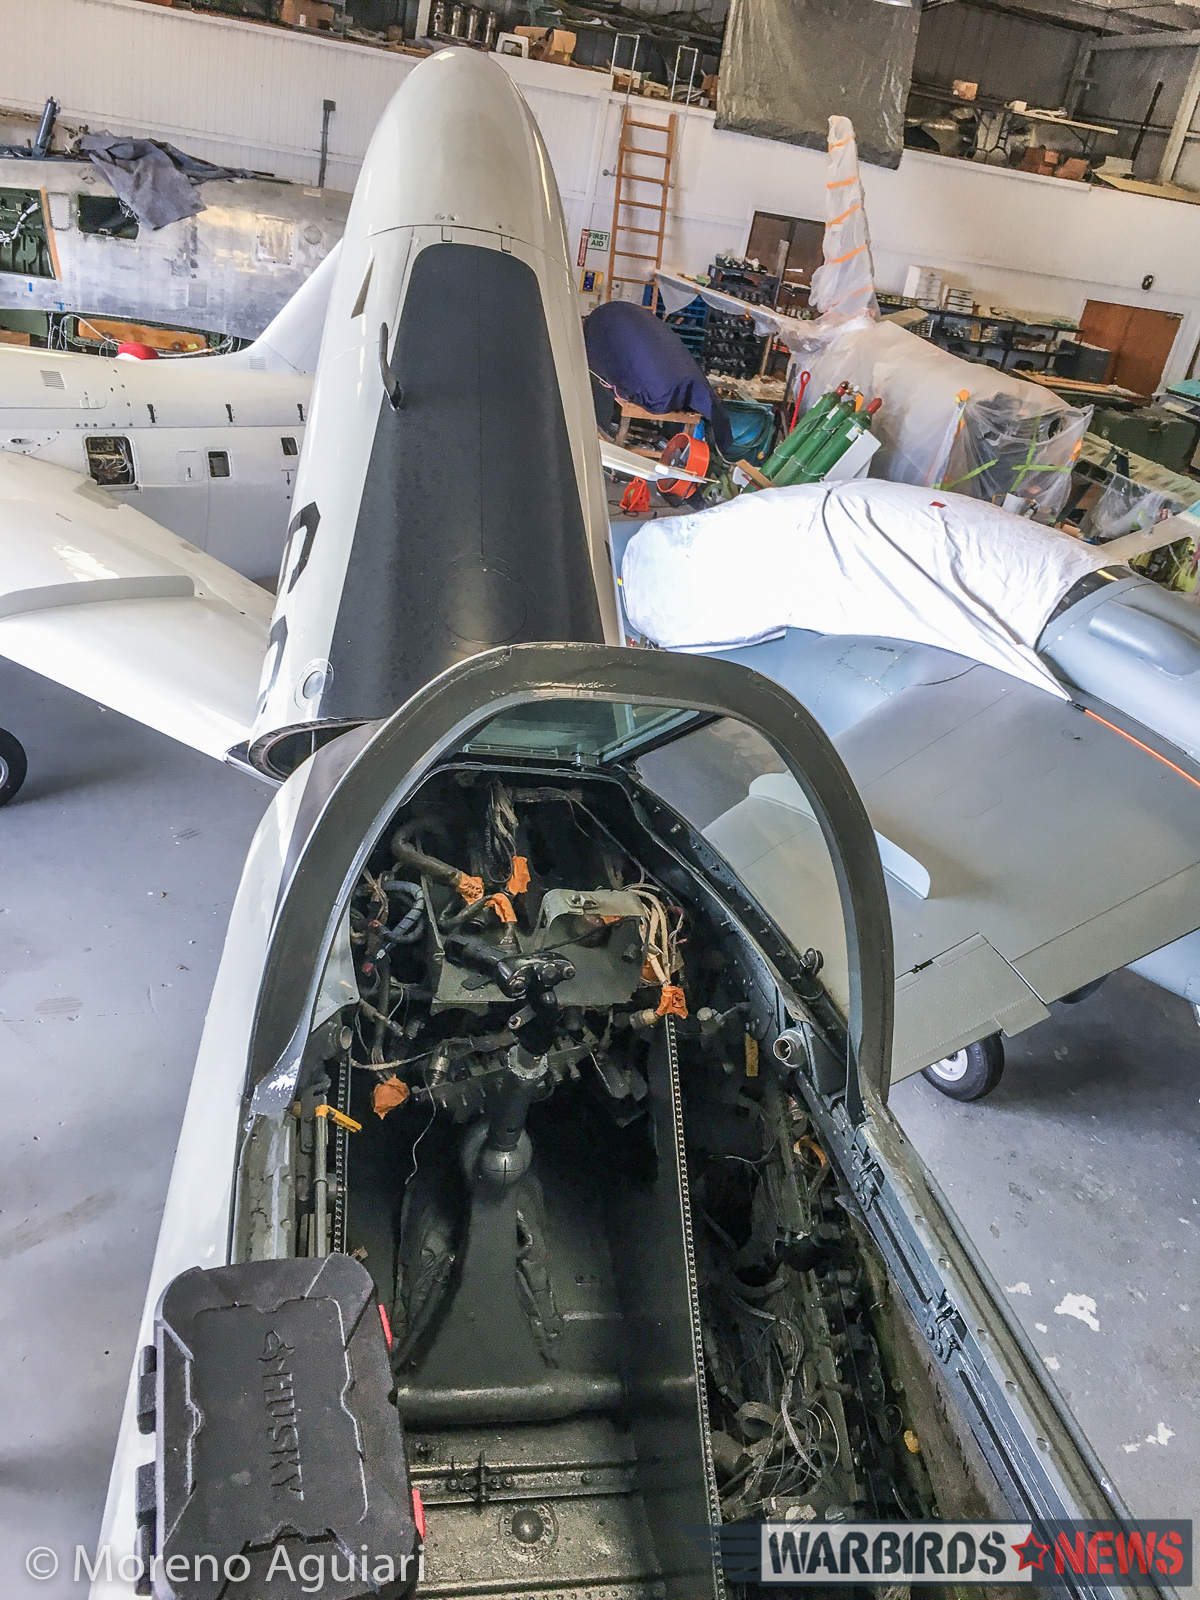 Rewiring the TA-4J's cockpit at Classic Fighters of America's hangar. (photo by Moreno Aguiari)